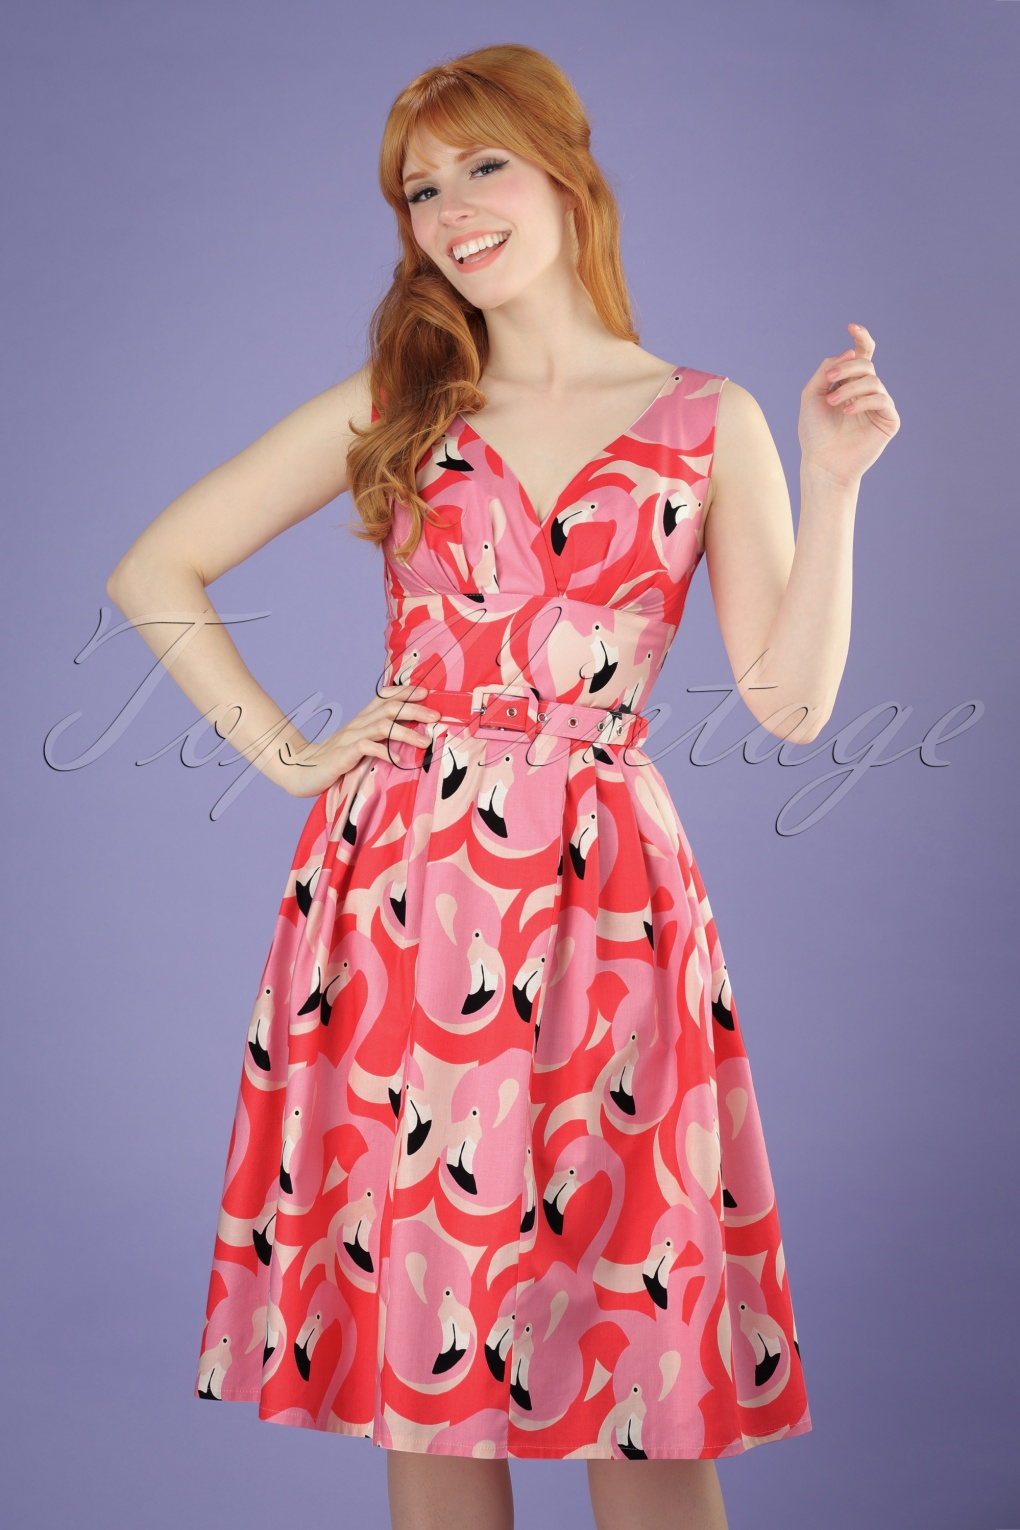 TopVintage Exclusive ~ 50s Flamingo Swing Dress in Pink